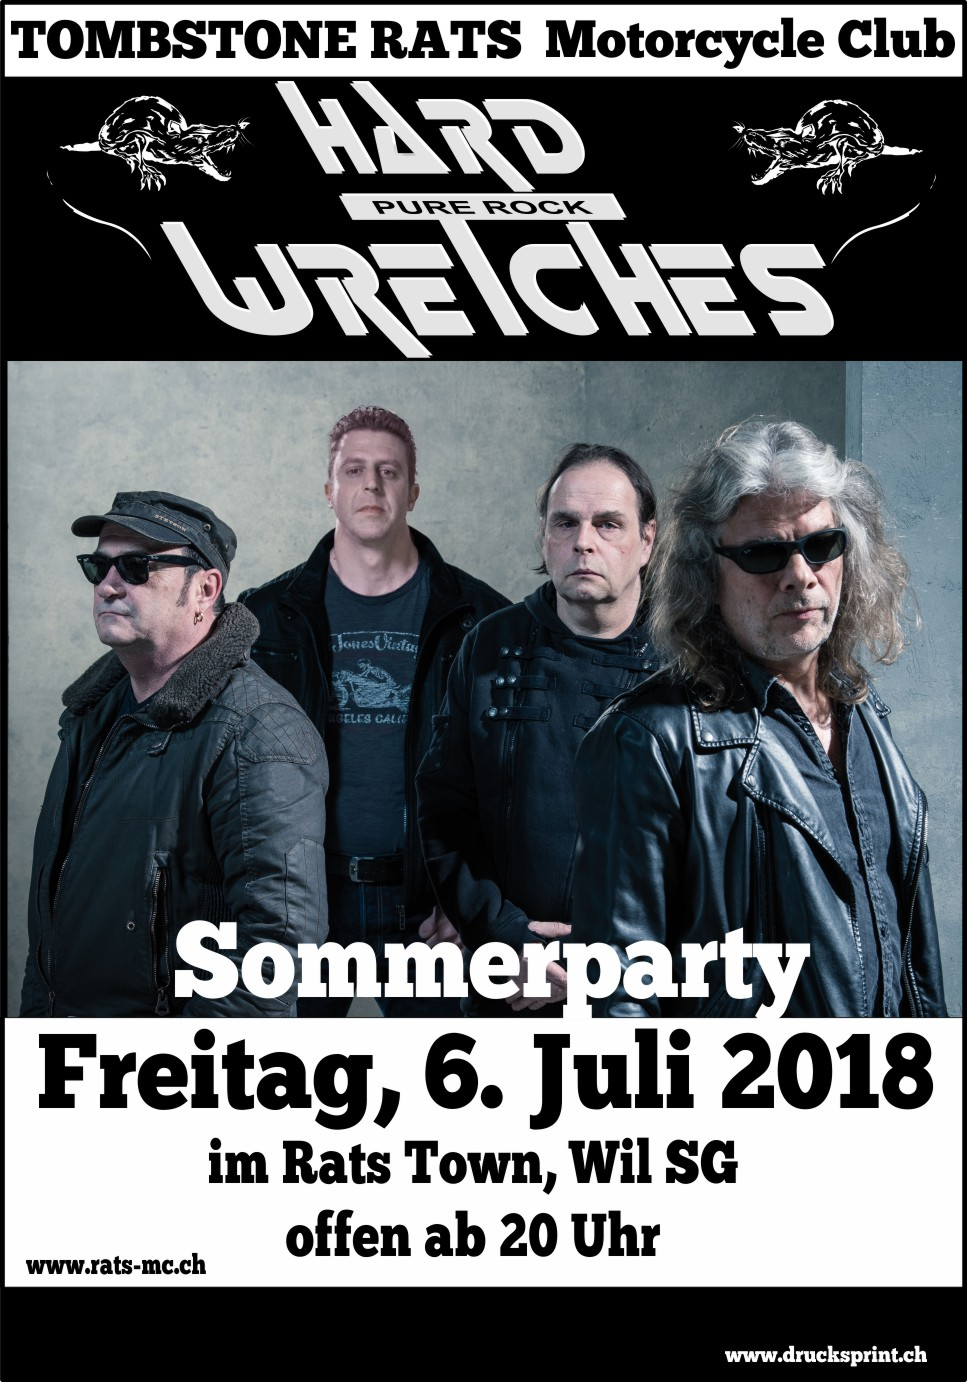 Plakat Hard Wretches Juli 2018